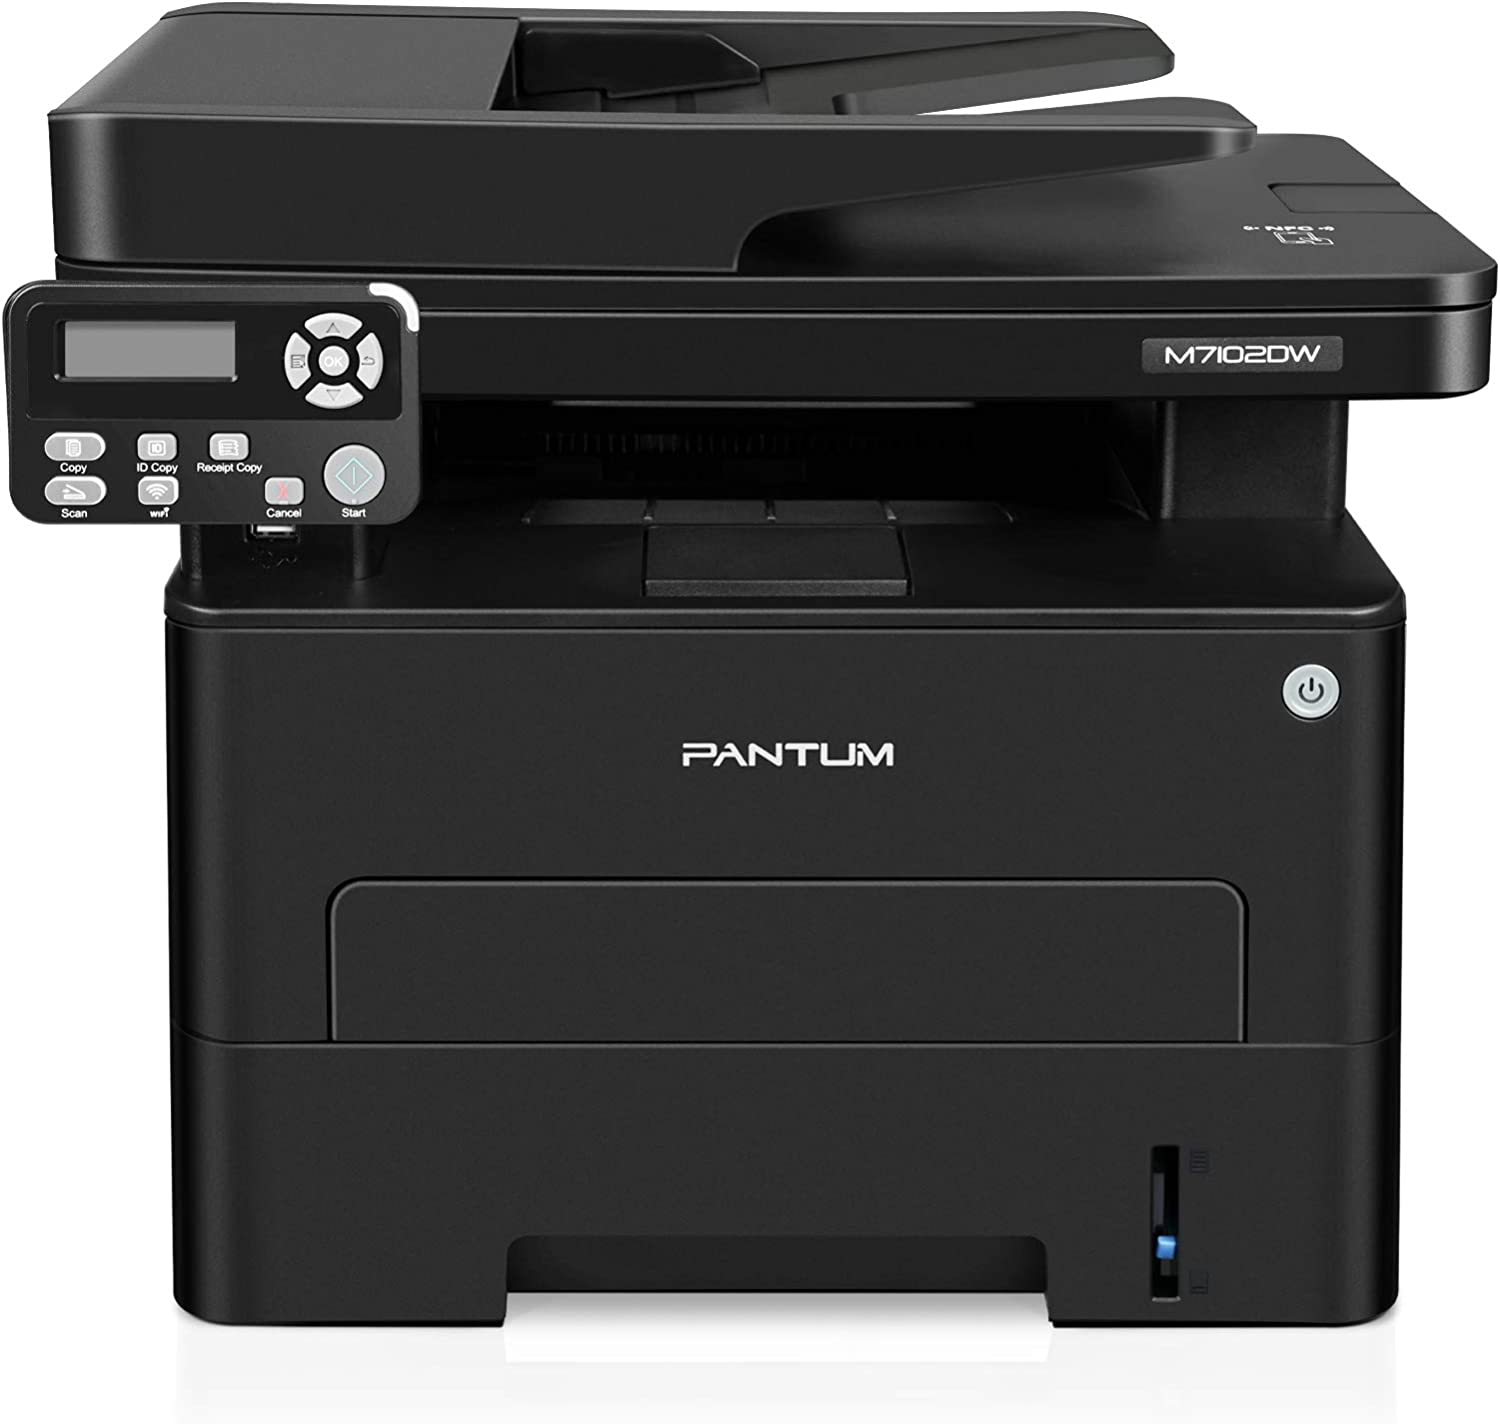 All-in-one Laser Printer with Scanner Copier, Monochrome Wireless Laser Printer, Mobile& Networking& Auto Two-Sided Printing, Print at 35PPM, Pantum M7102DW(V4T56A)